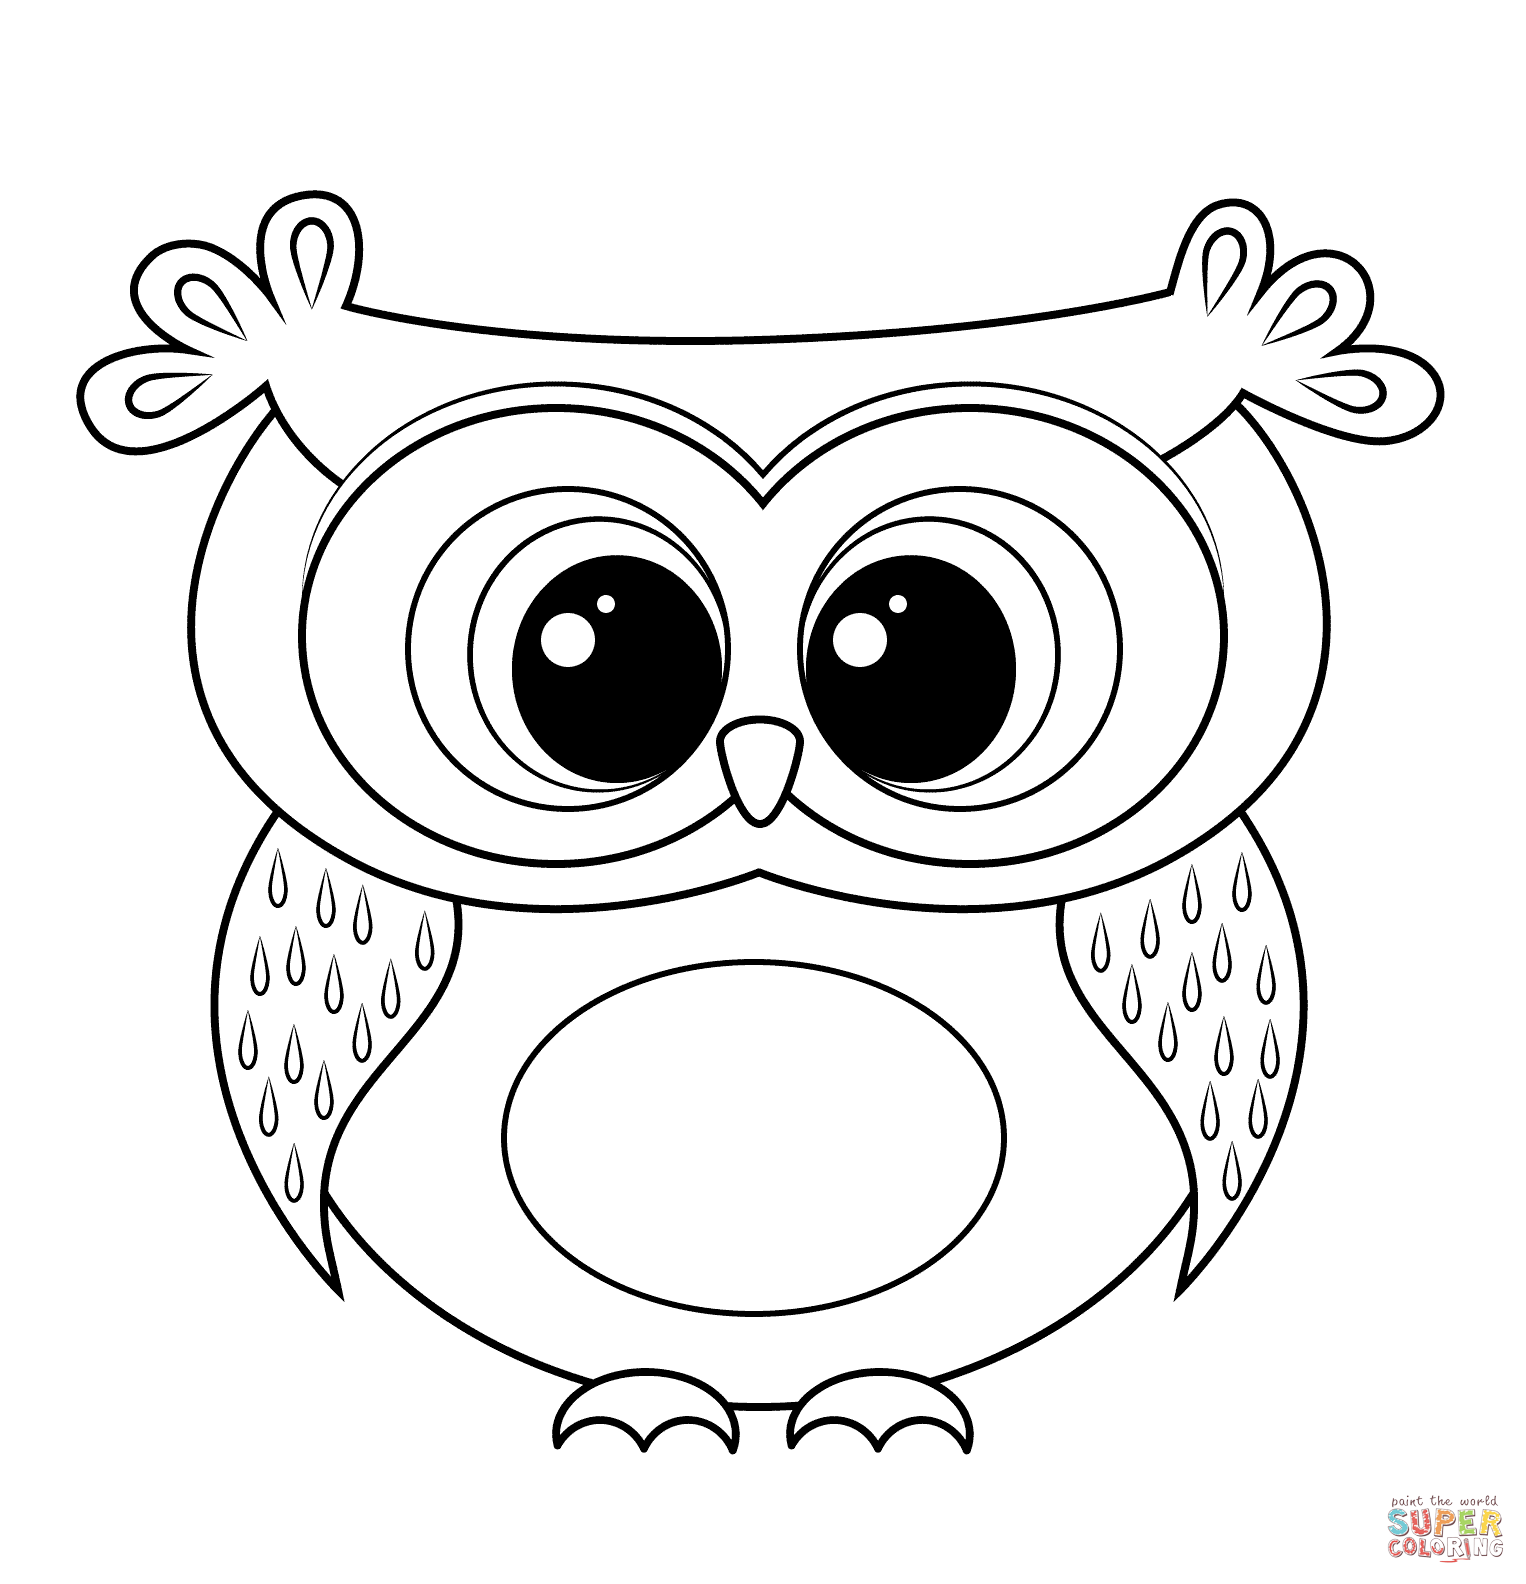 owl cartoon coloring pages cartoon owl coloring page free printable coloring pages owl pages cartoon coloring